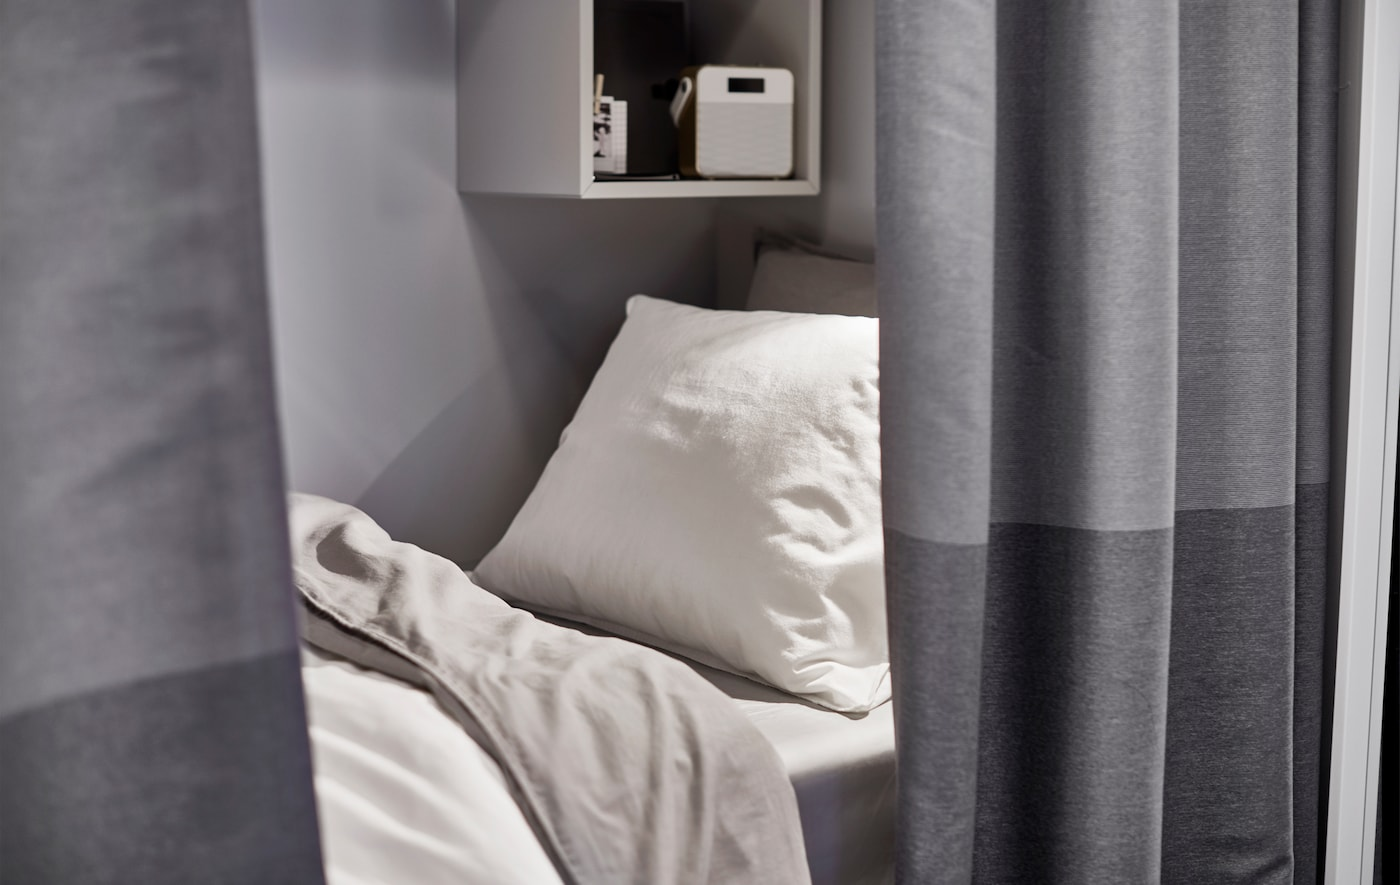 A small bed with a white pillow and light grey bedlinens peeking out from behind a dark grey curtain room divider.